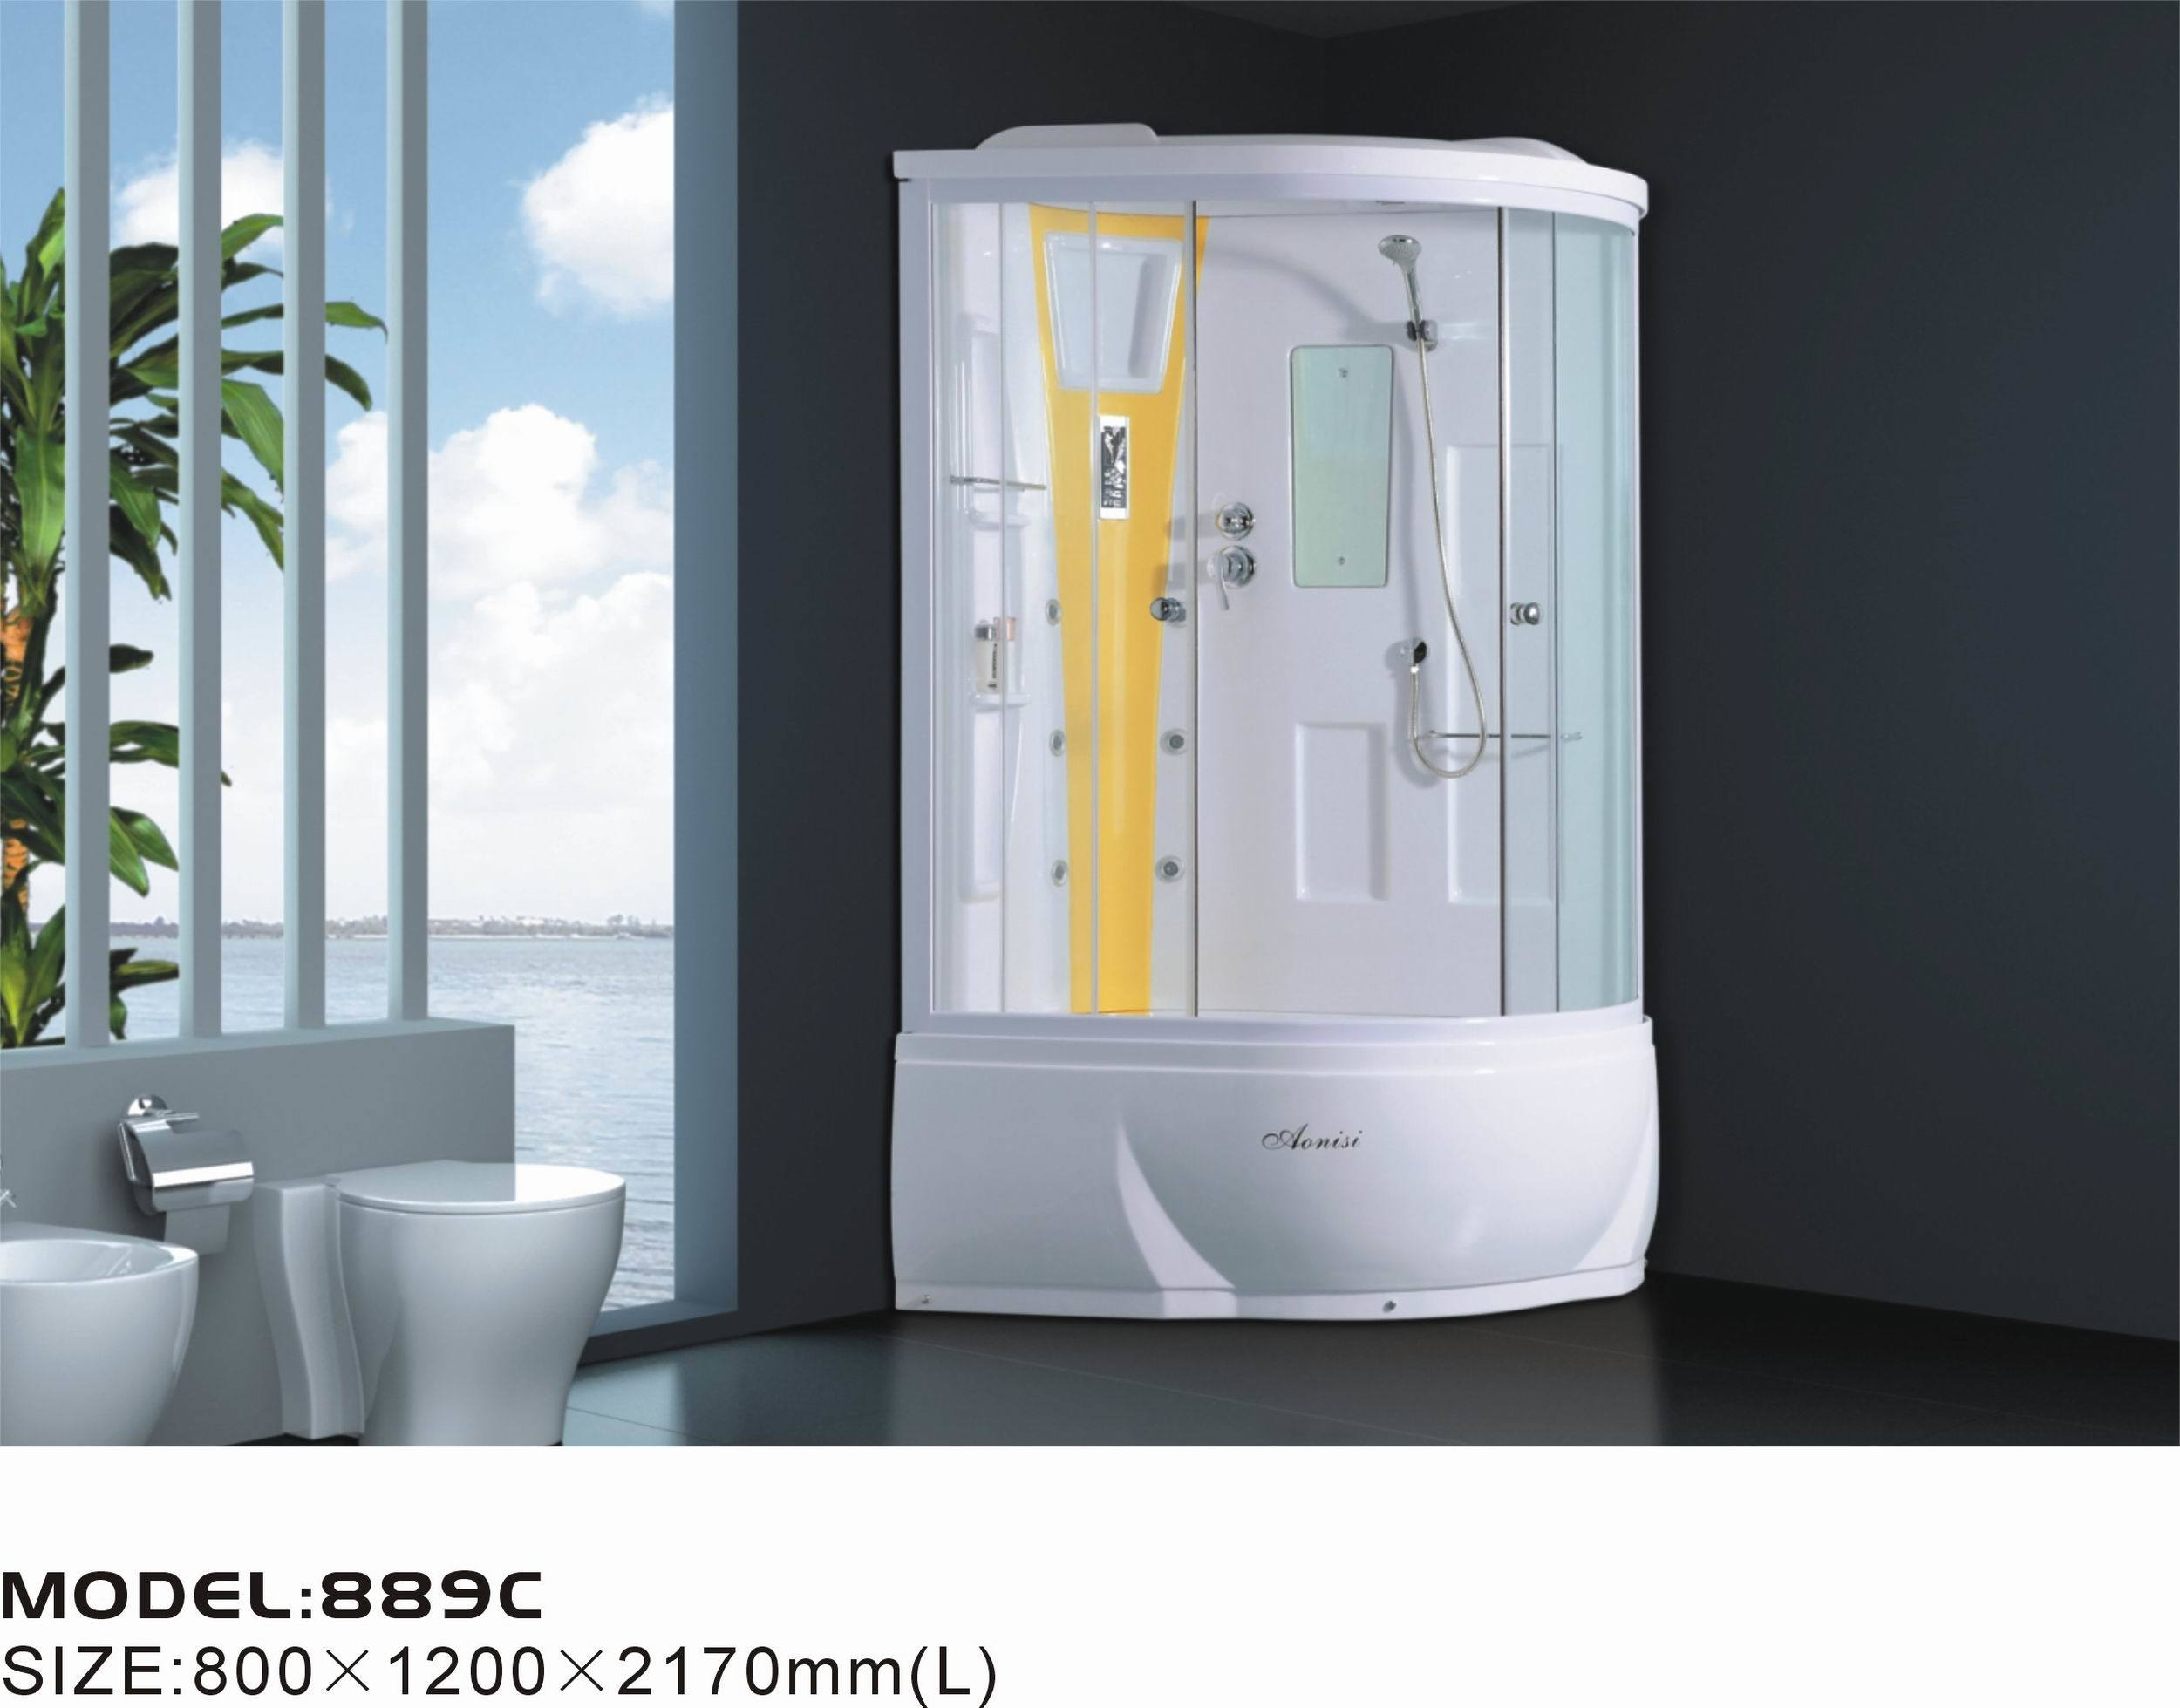 China bathroom shower ans 889c china bathroom shower for Bathroom accessories hs code